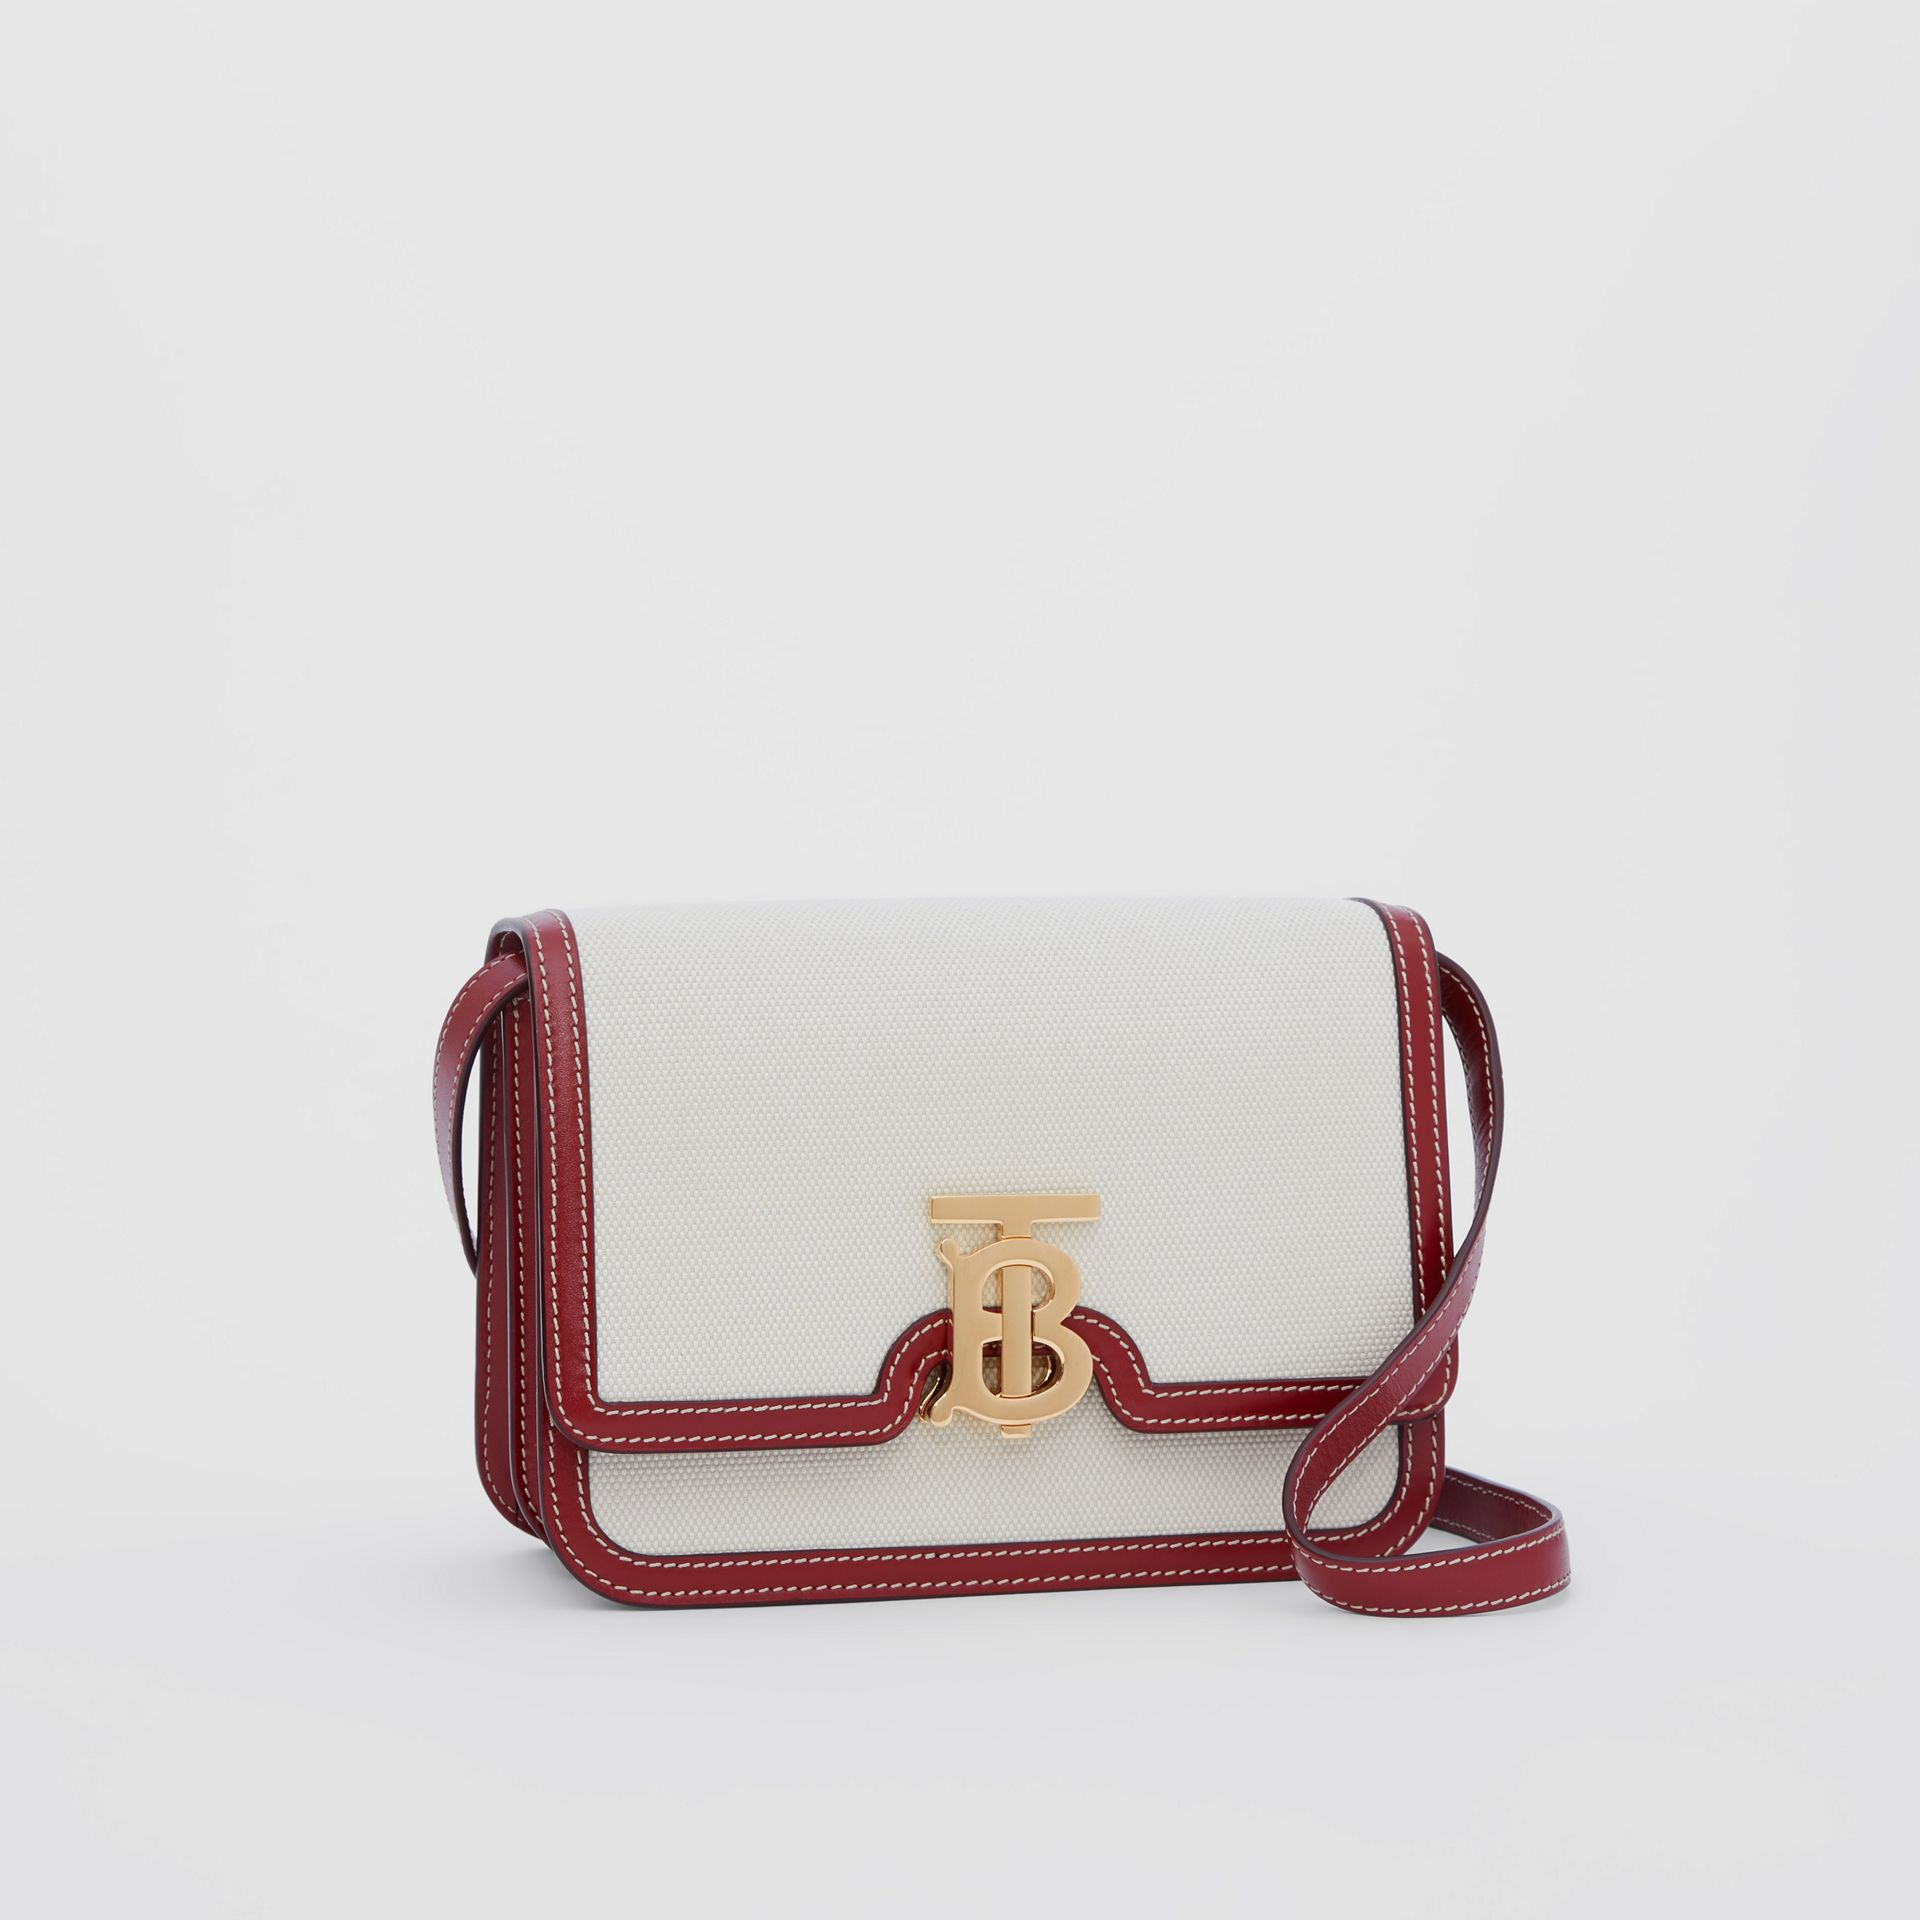 Small Two-tone Canvas and Leather TB Bag in Natural/dark Carmine - Women | Burberry - gallery image 5